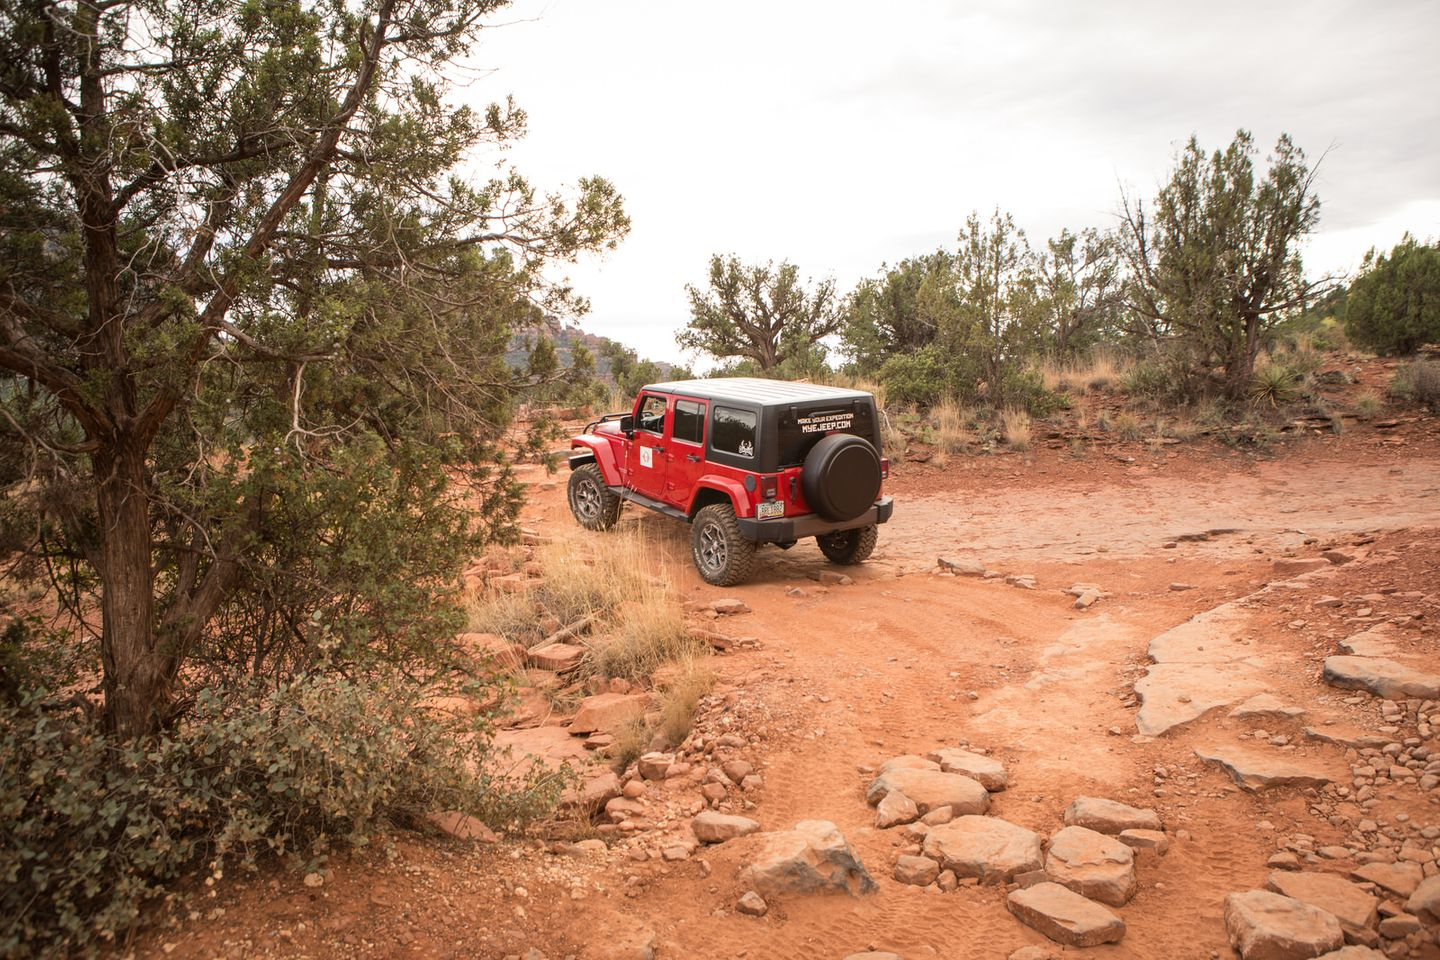 Dry Creek Road - Waypoint 8: Tight Left Turn